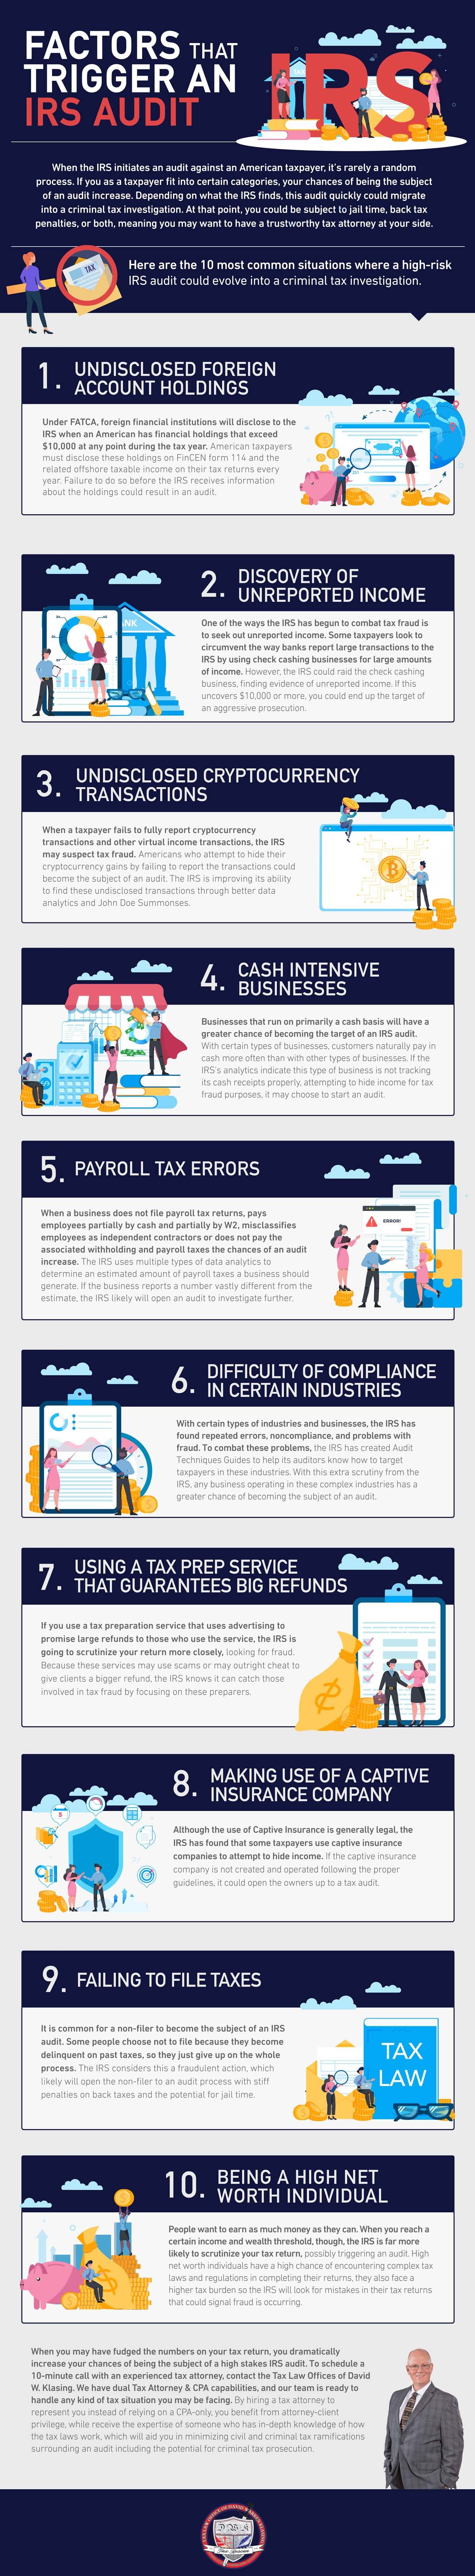 Factors That Trigger an IRS Audit #infographic